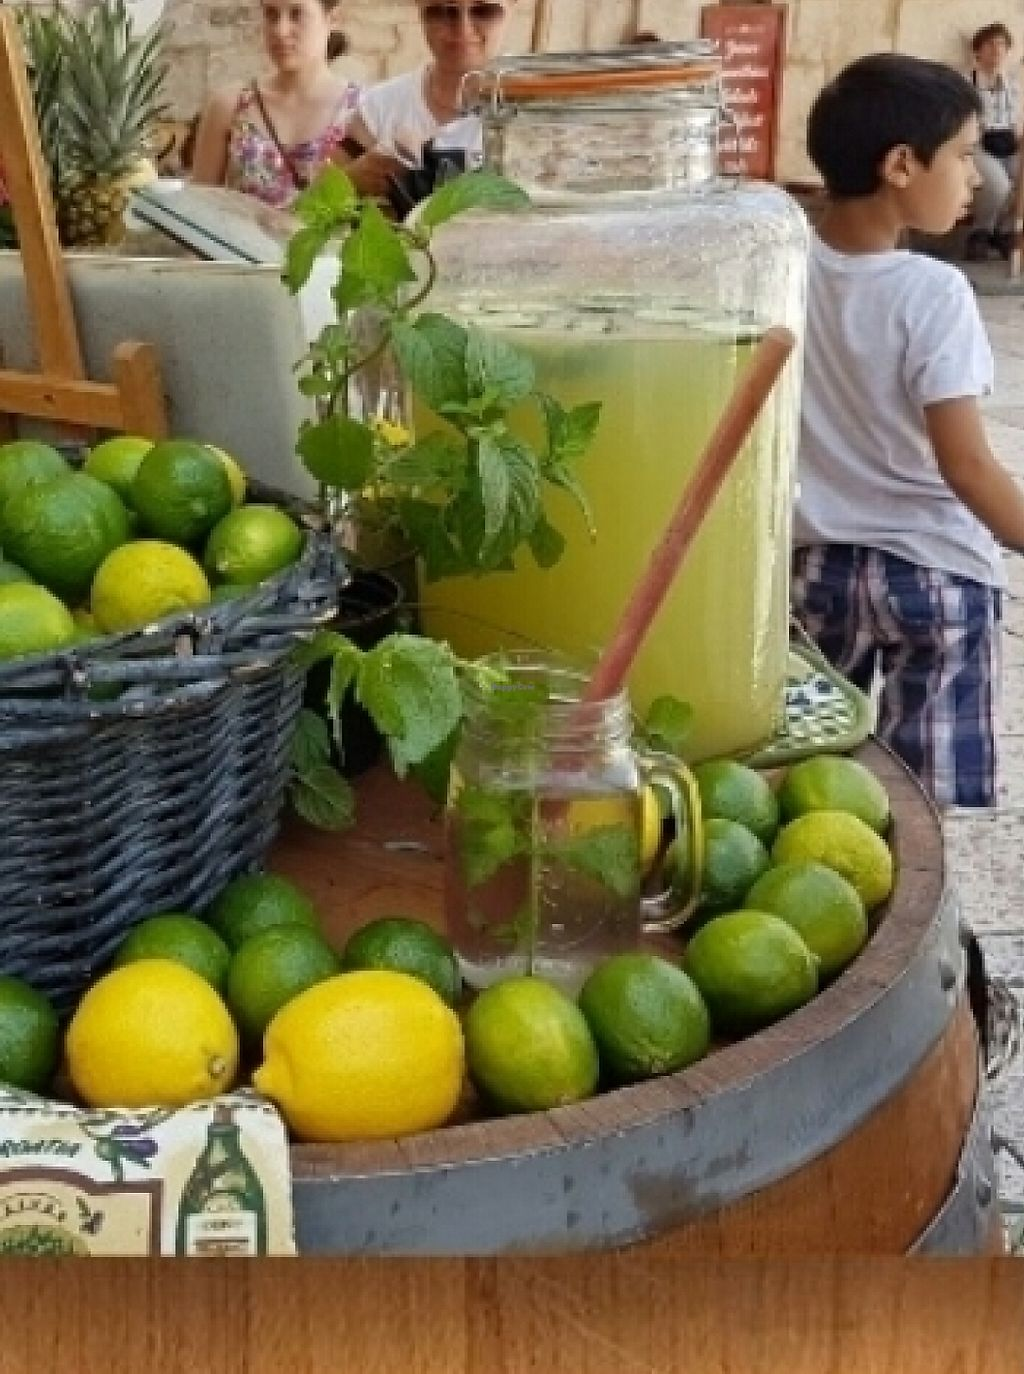 """Photo of Kokolo  by <a href=""""/members/profile/JaseJura%C5%A1in"""">JaseJurašin</a> <br/>Fresh detox cucumber water <br/> July 20, 2016  - <a href='/contact/abuse/image/50042/236041'>Report</a>"""